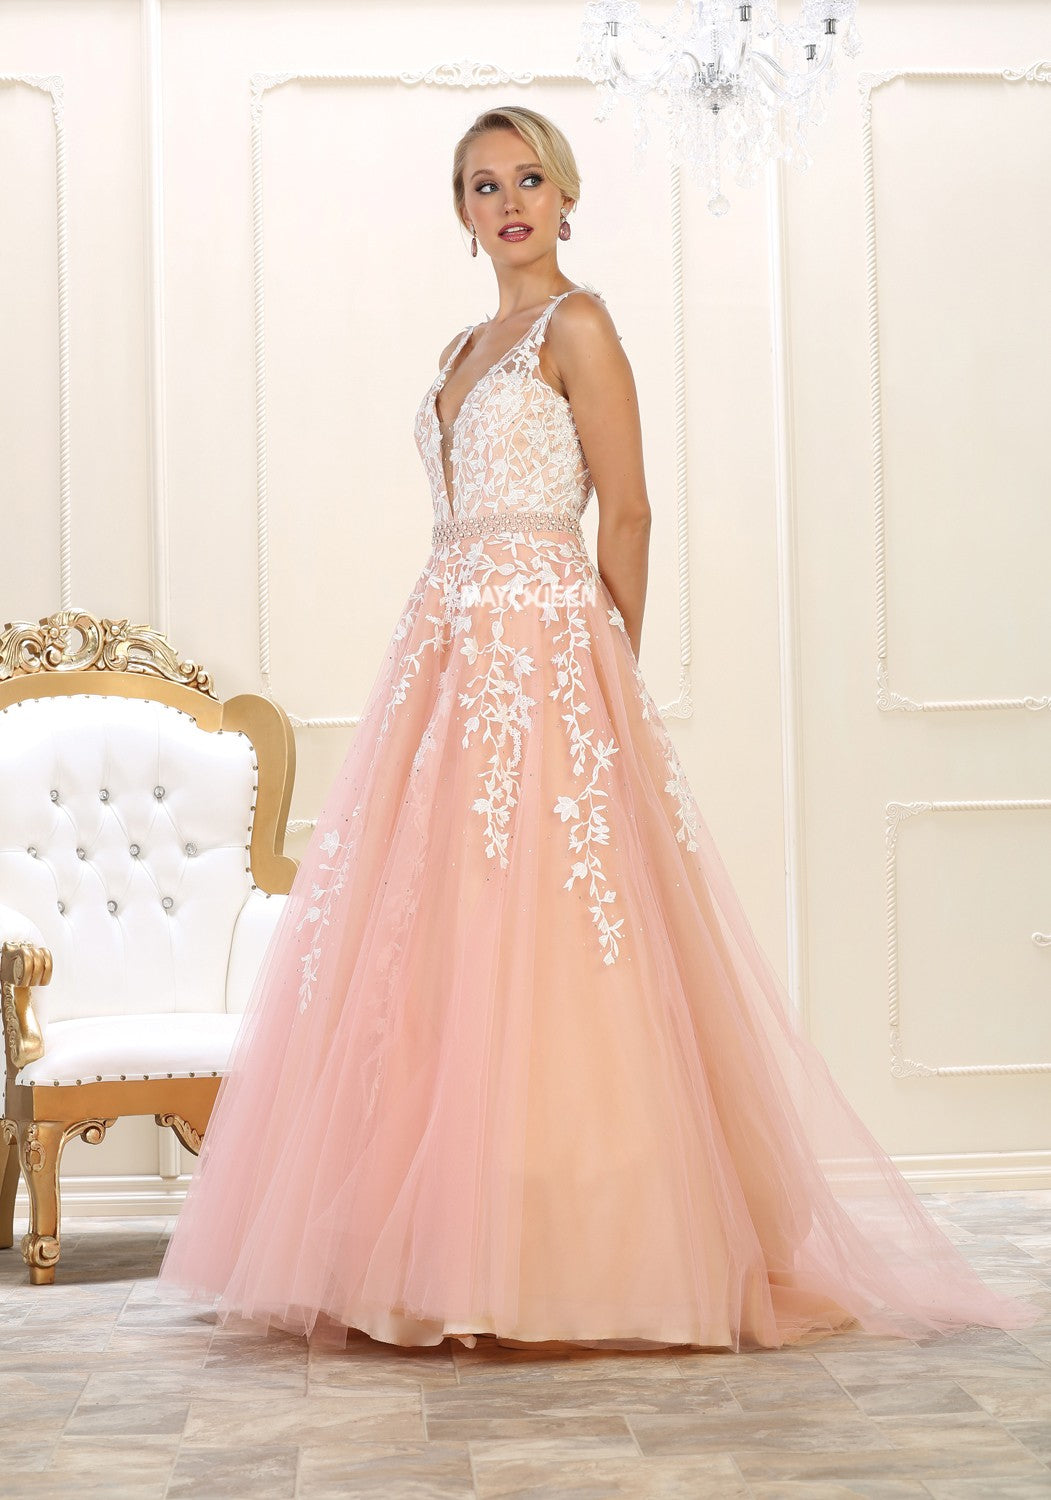 MQ 7613 - A-Line Embroidered Tulle Ball Gown – Diggz Prom